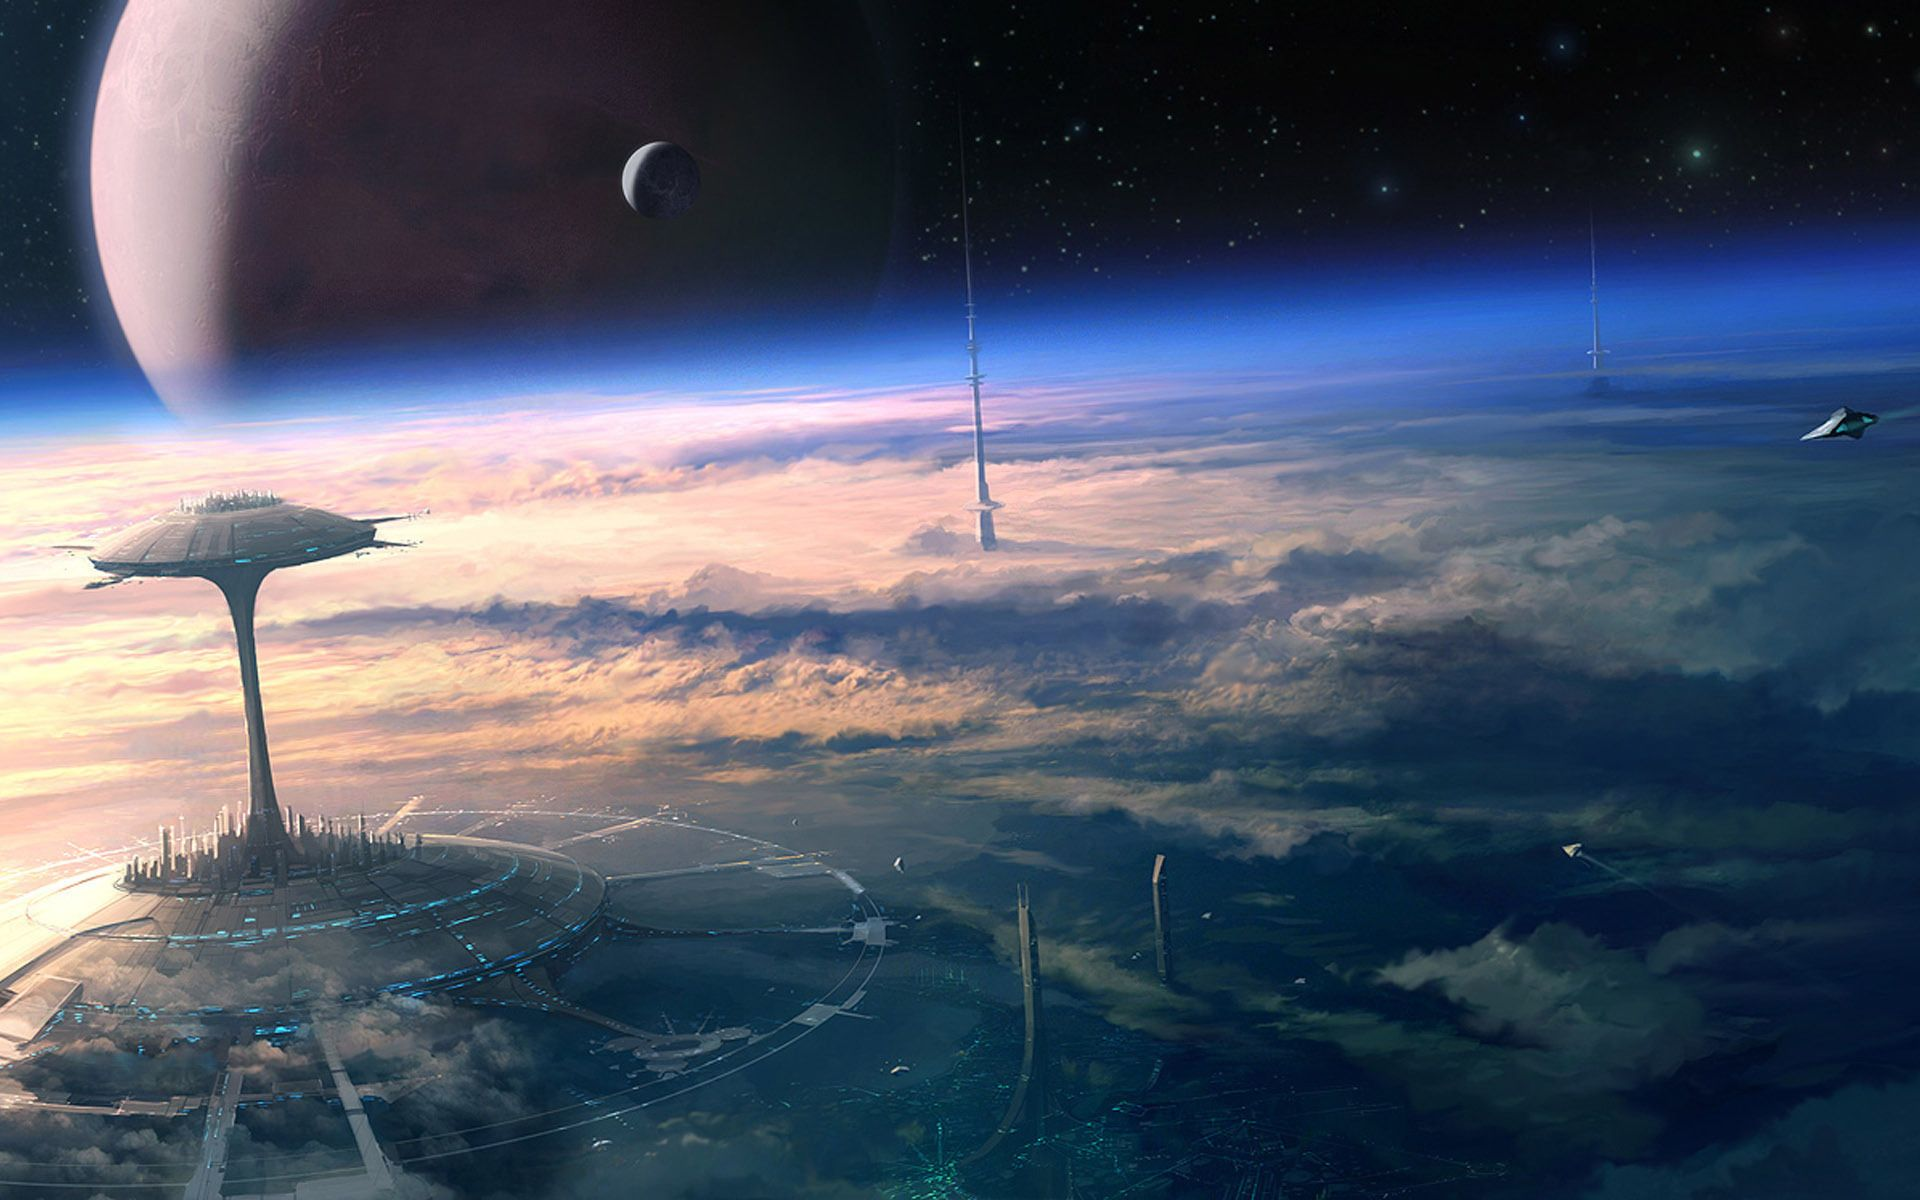 sci fi cities on other planets - photo #24